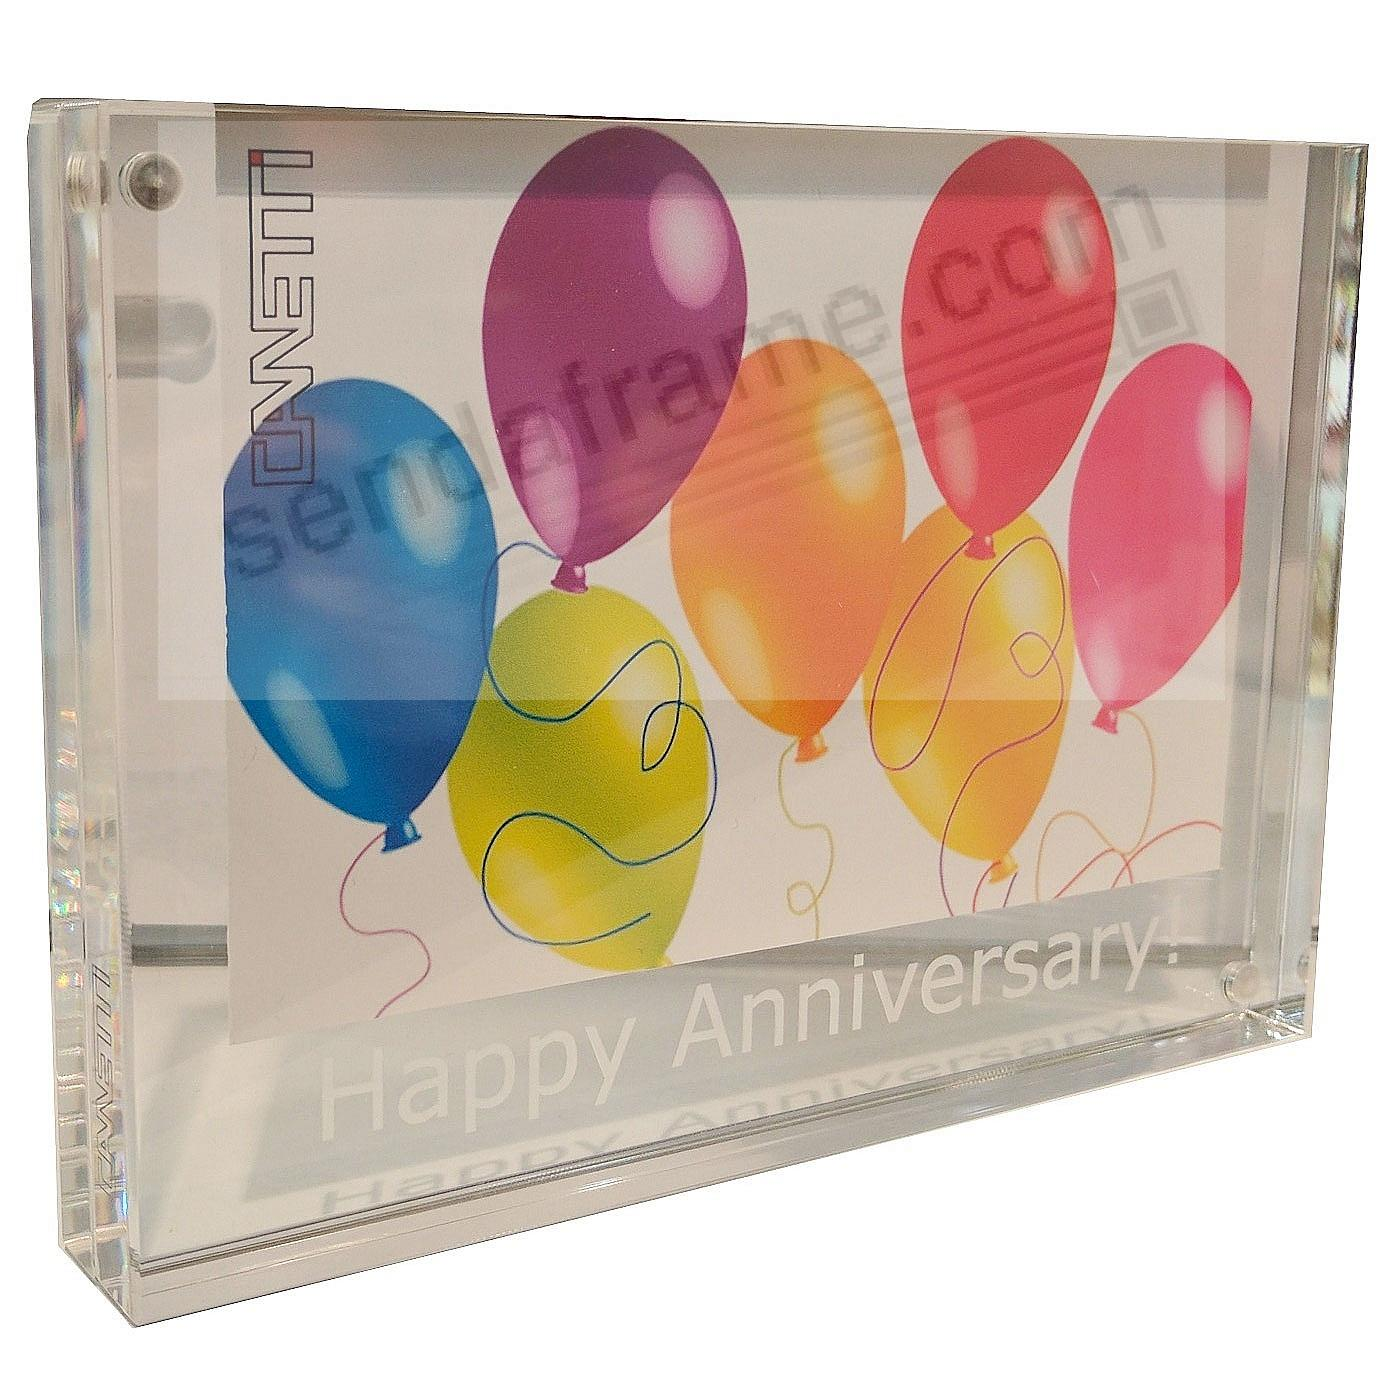 HAPPY ANNIVERSARY! - The Original MAGNET FRAME by Canetti®